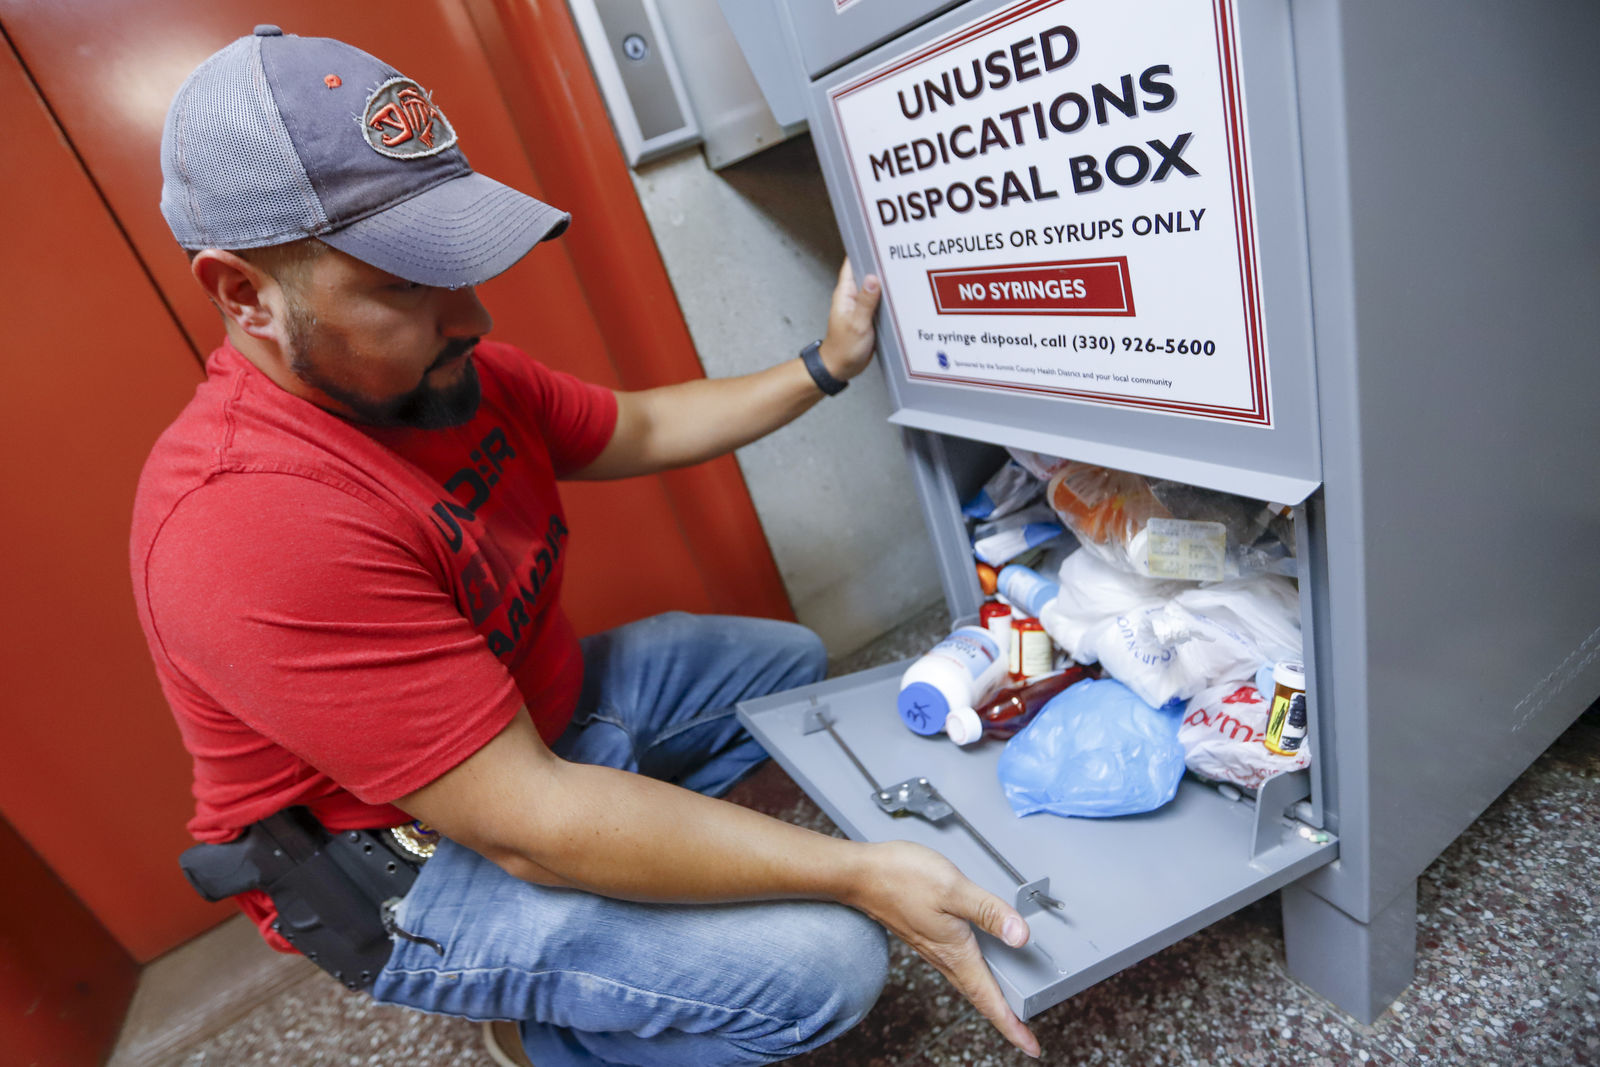 FILE - In this Sept. 11, 2019, photo, narcotics detective Paul Laurella retrieves unused medications from the police department's disposal box in Barberton, Ohio.{ } (AP Photo/Keith Srakocic, File)